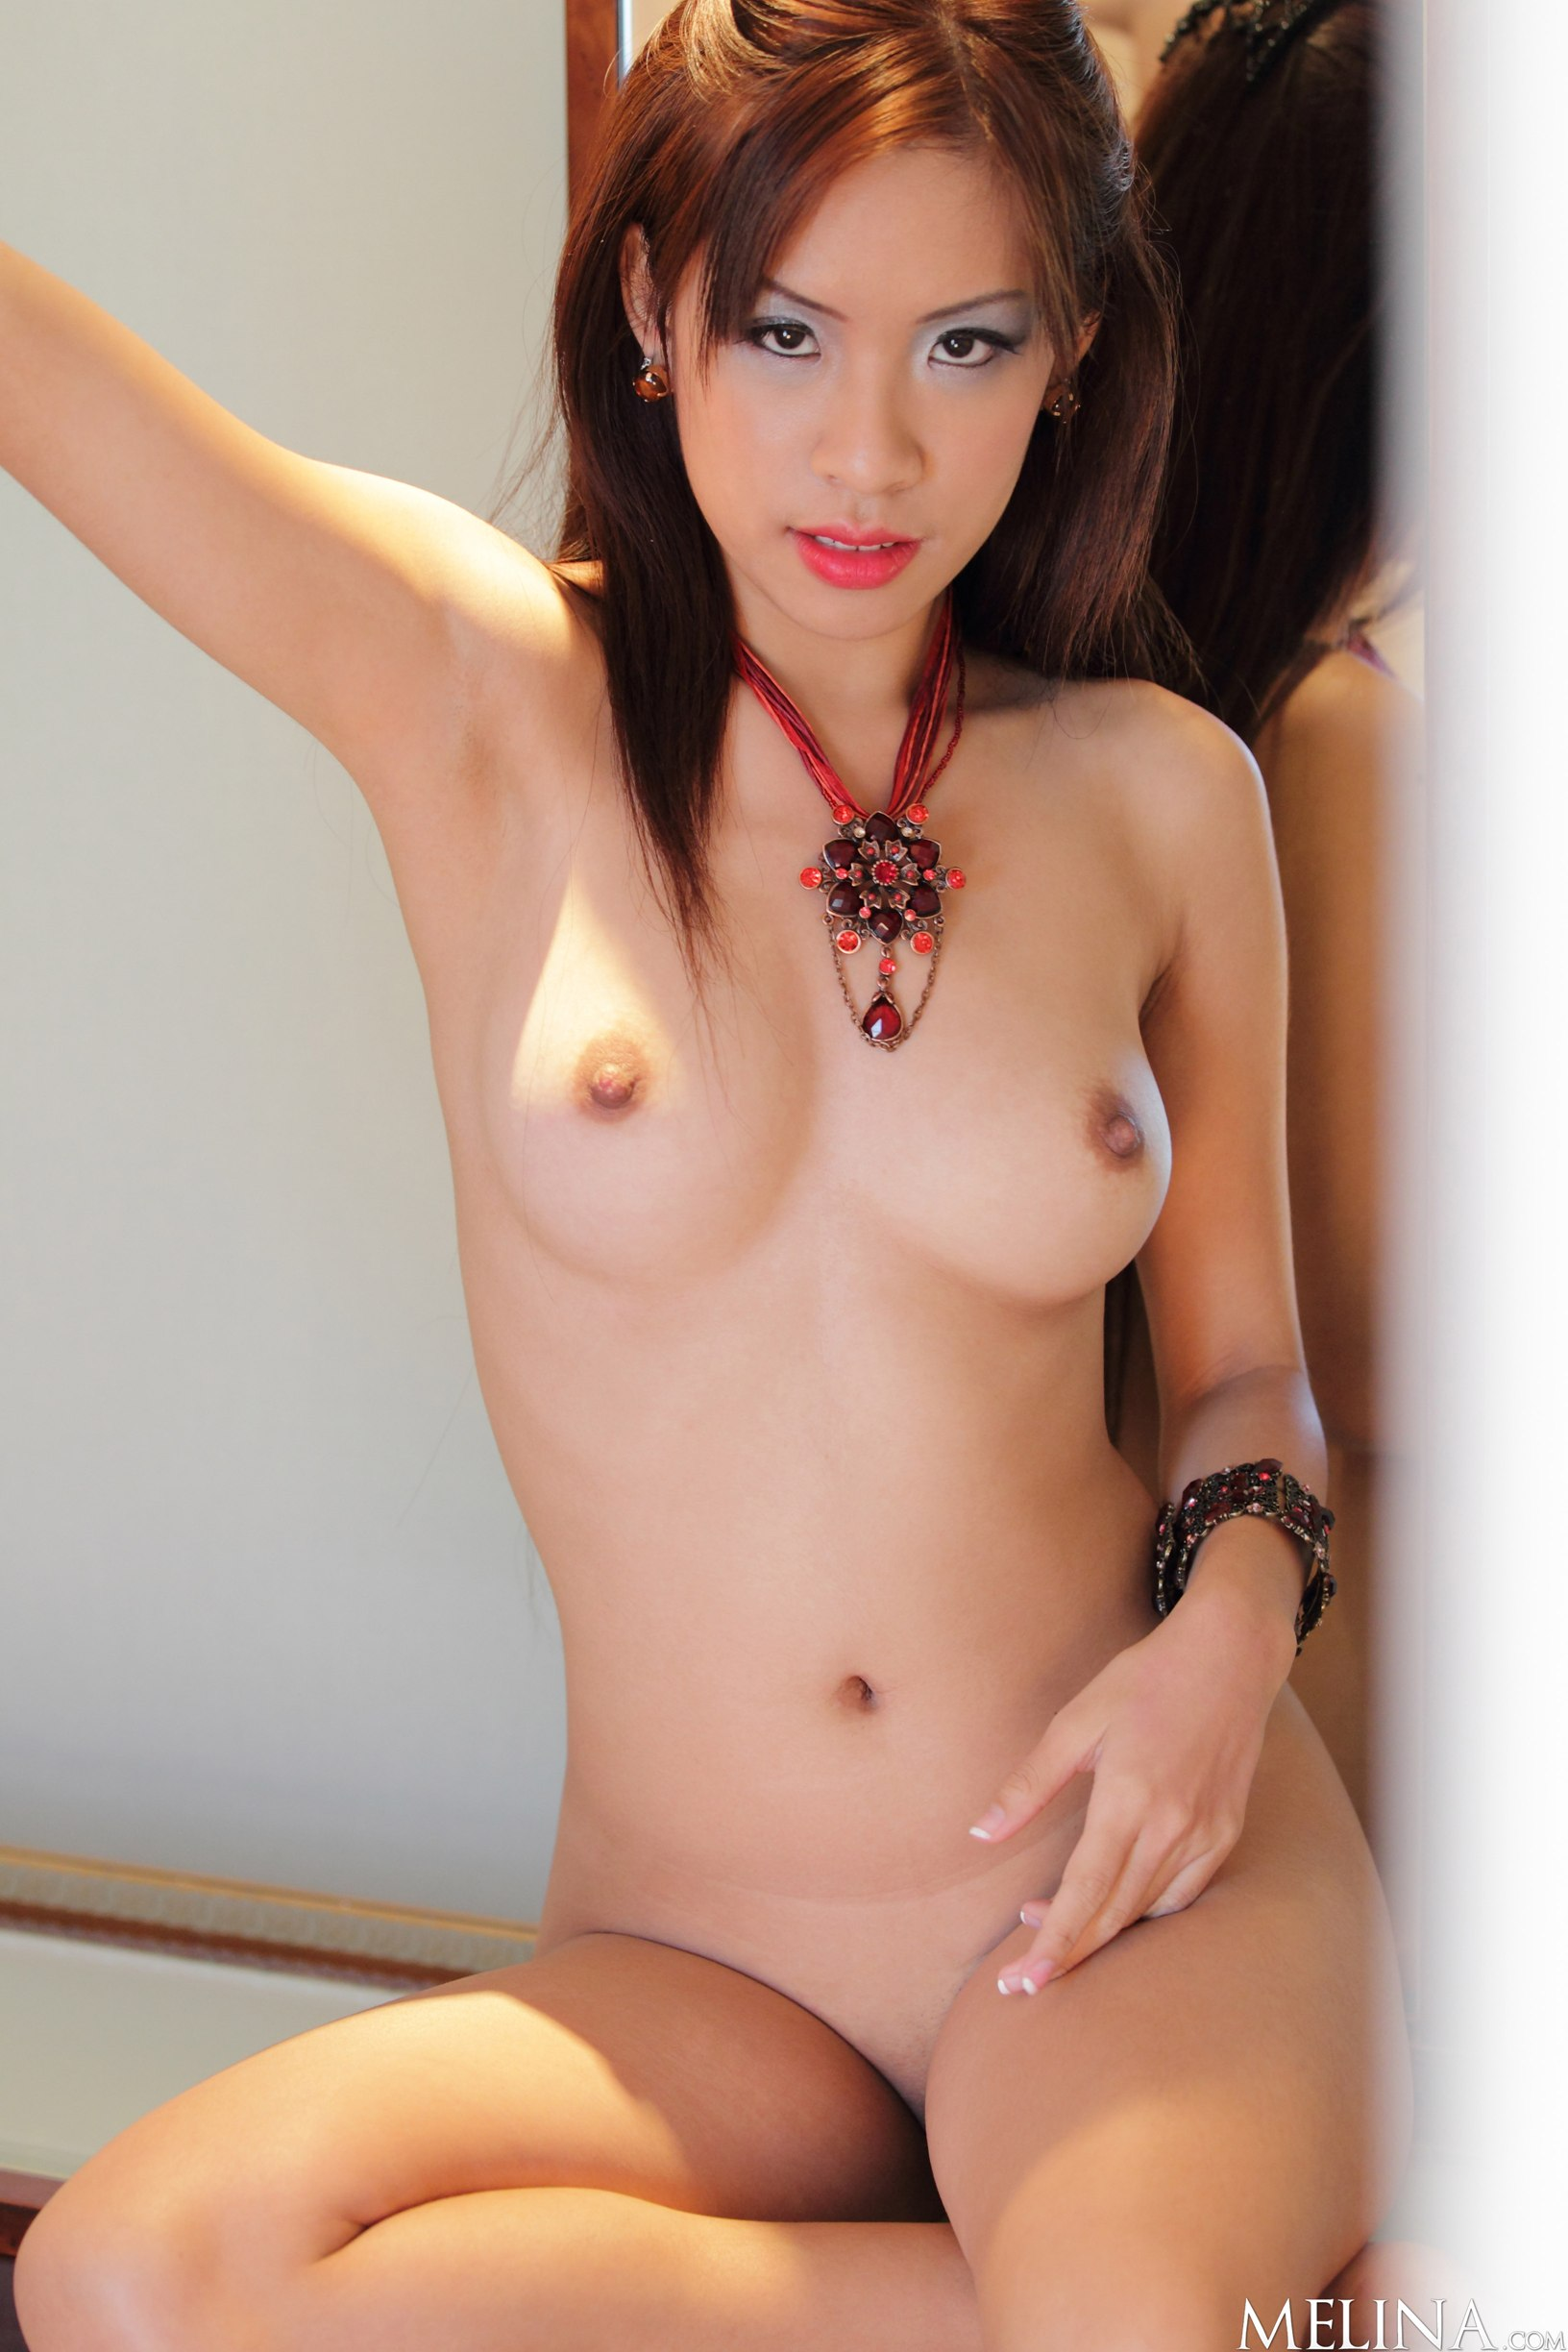 shaved pussy middle shools girl